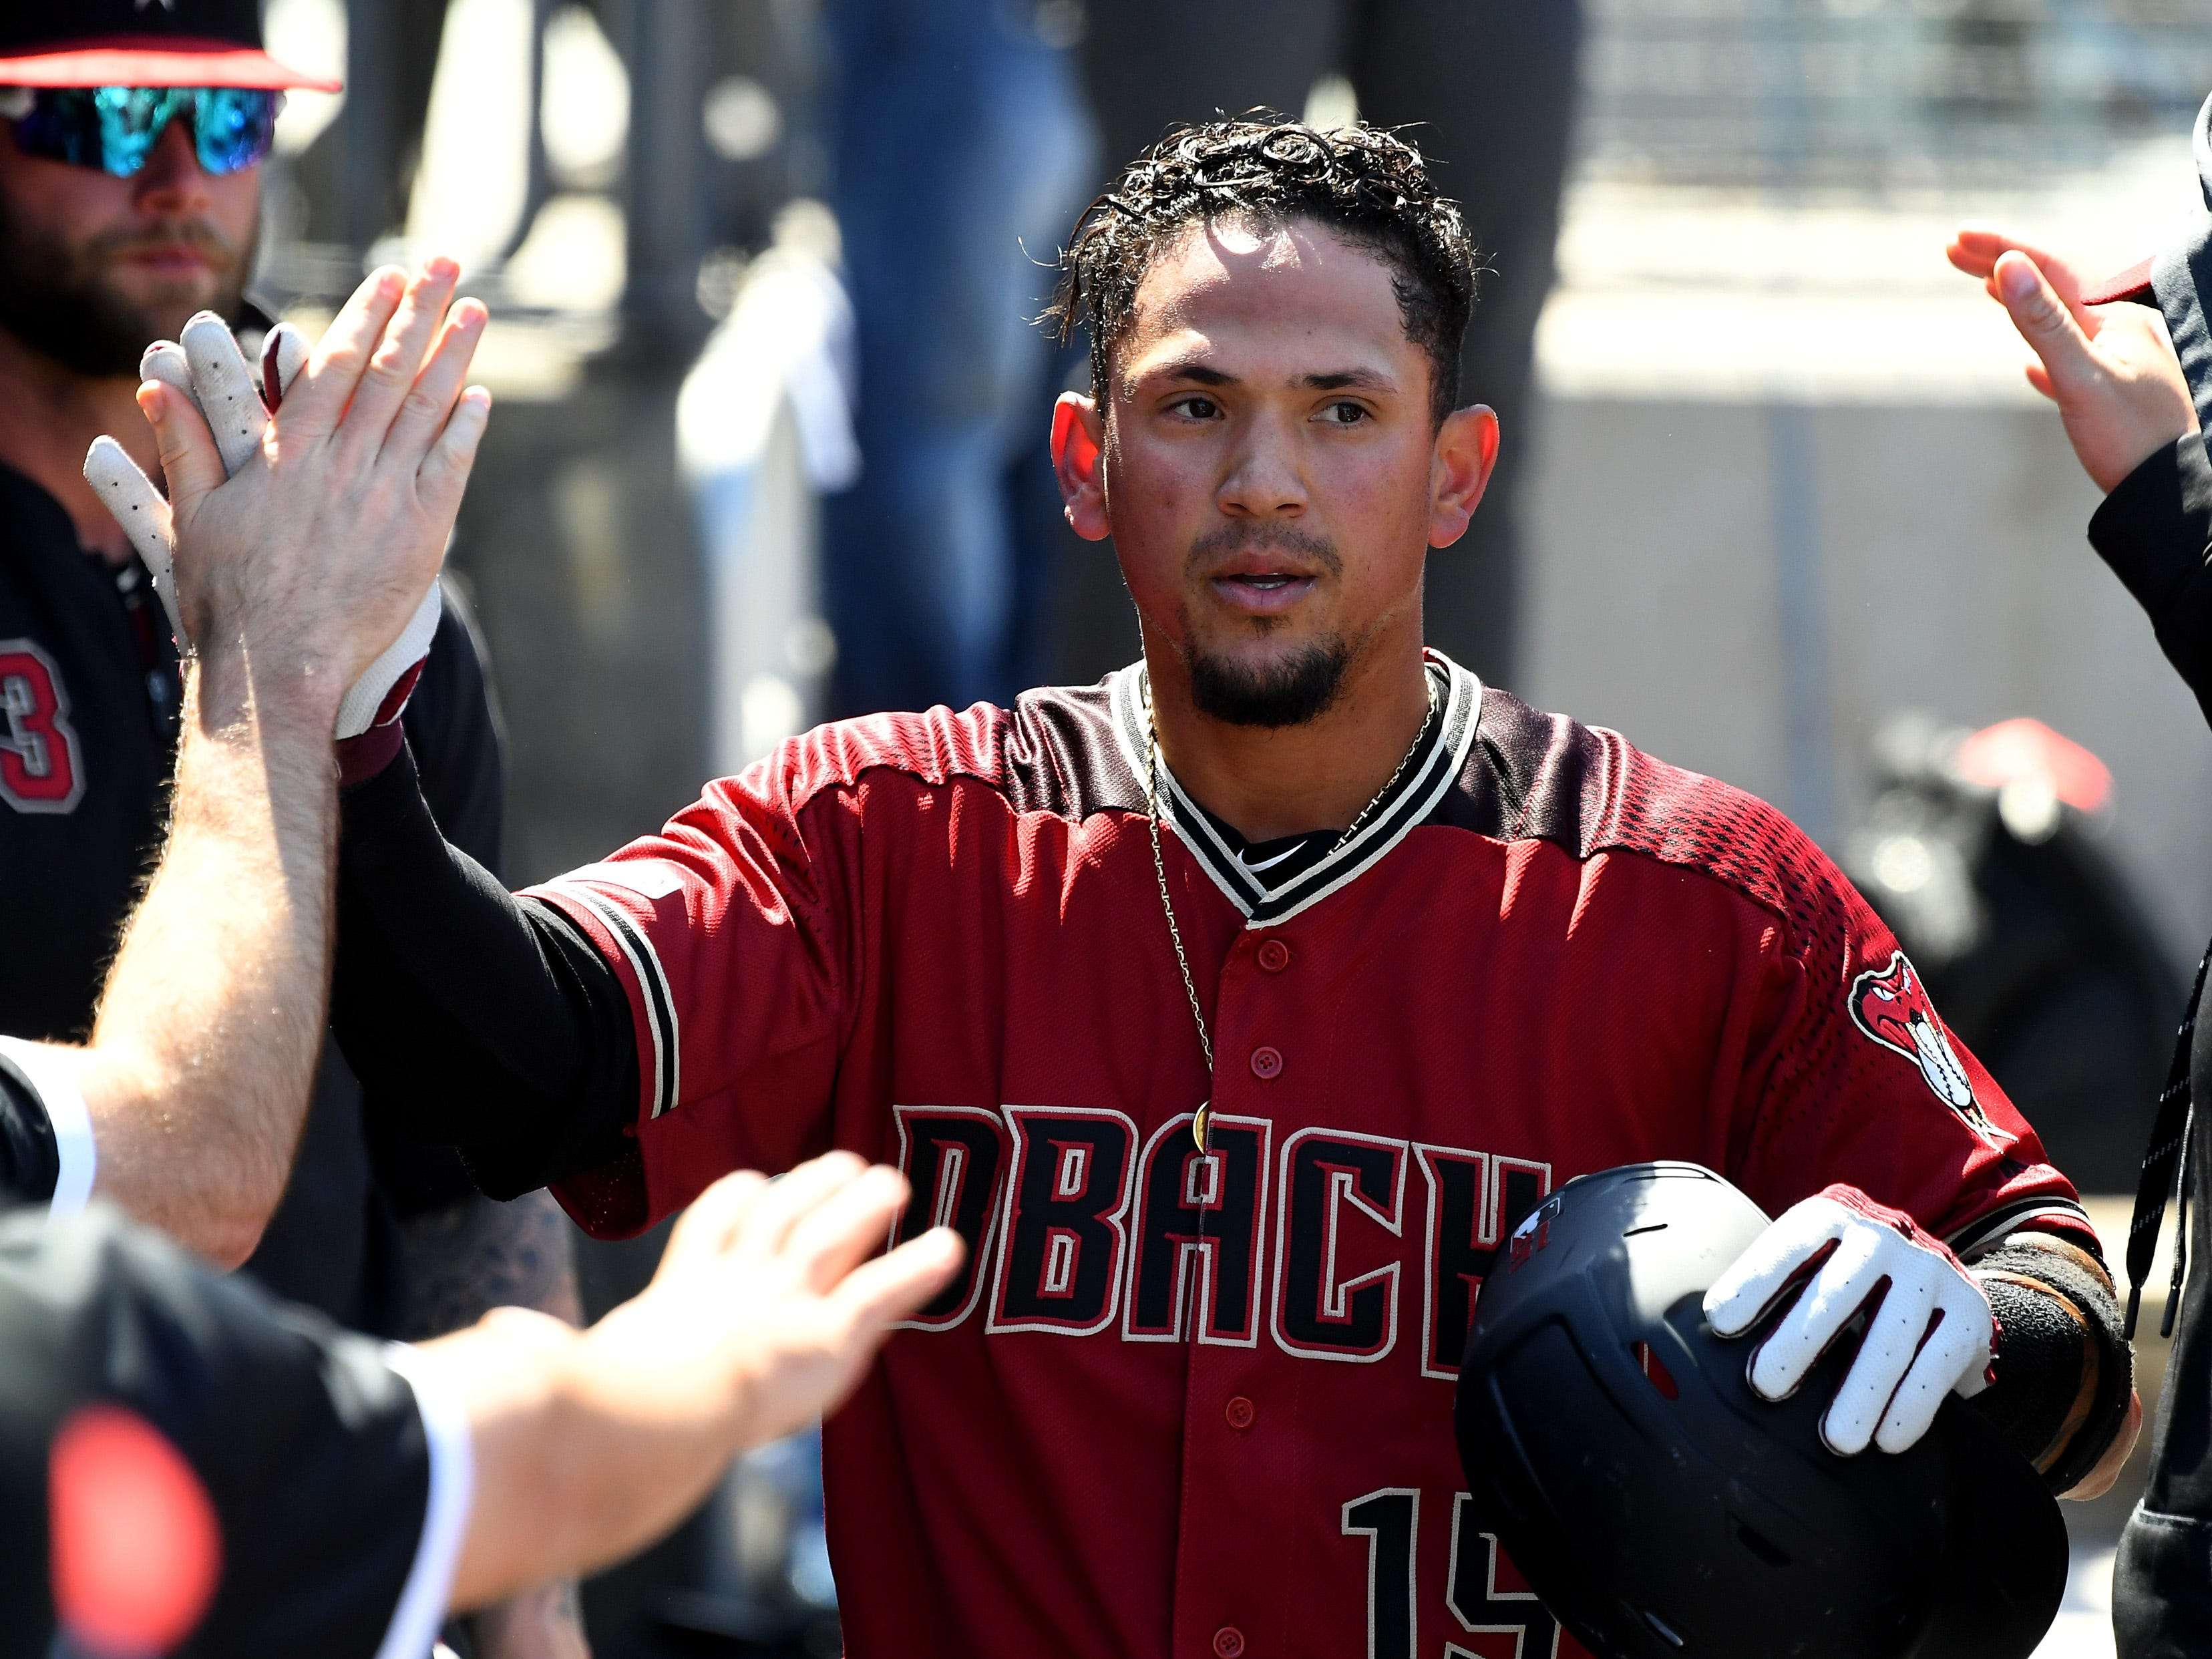 Mar 31, 2019; Los Angeles, CA, USA;    Arizona Diamondbacks second baseman Ildemaro Vargas (15) is greeted in the dugout after scoring a run against the Los Angeles Dodgers in the fourth inning at Dodger Stadium.